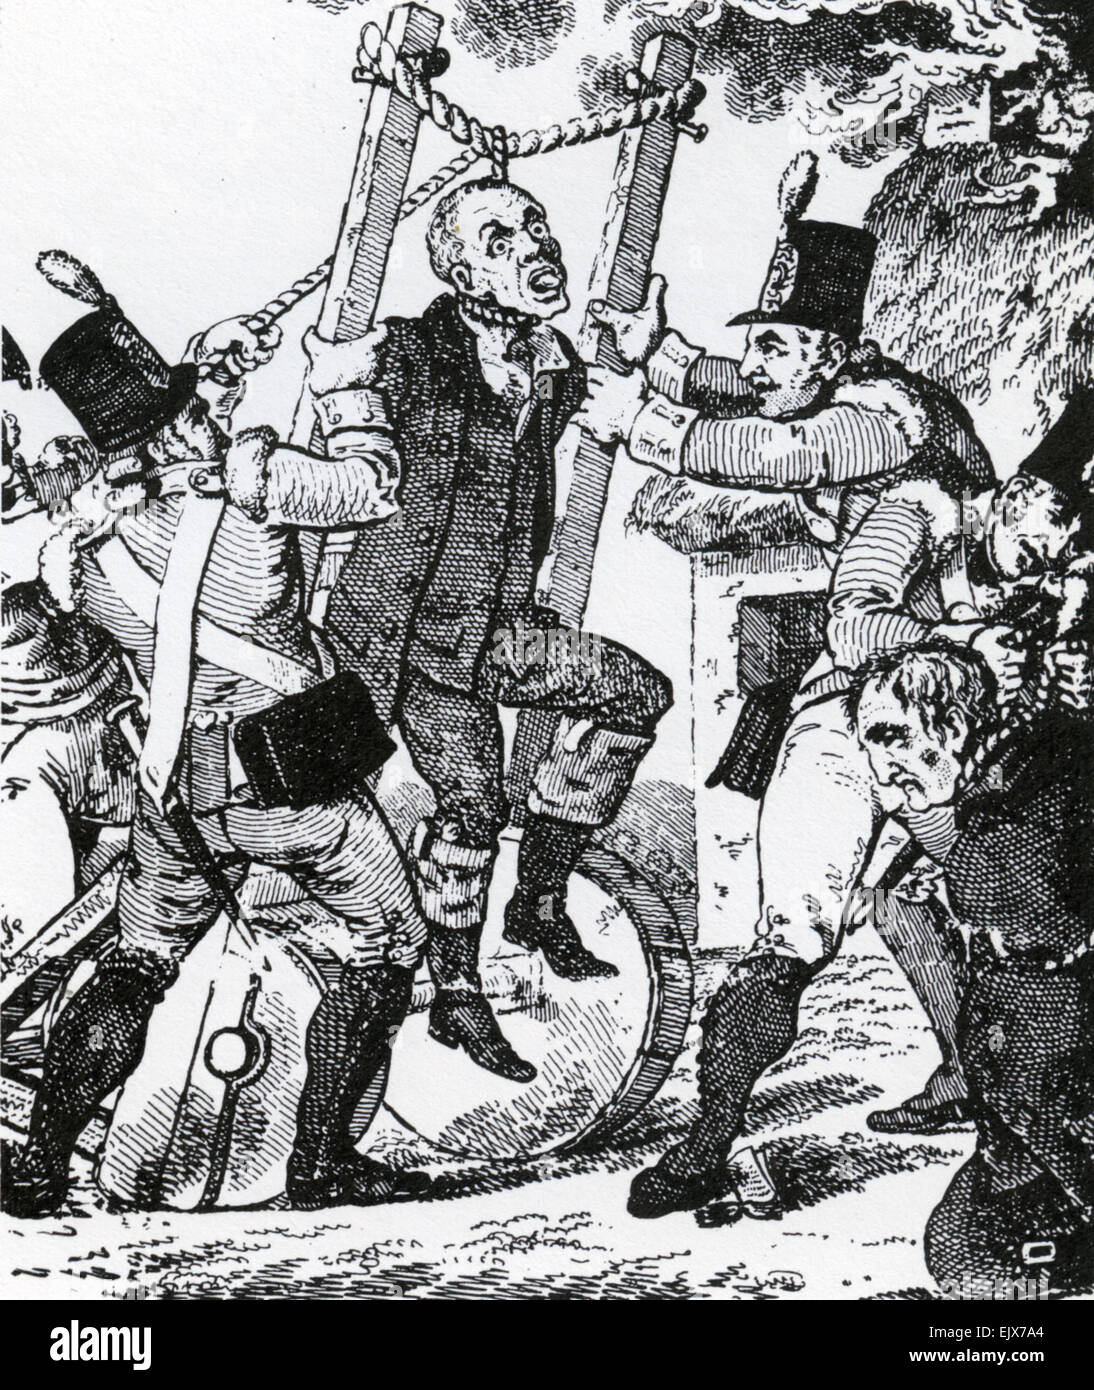 1798 IRISH REBELLION  Portable gallows according to Walter Cox's Irish Monthly Magazine in 1810. Possibly fictional. - Stock Image